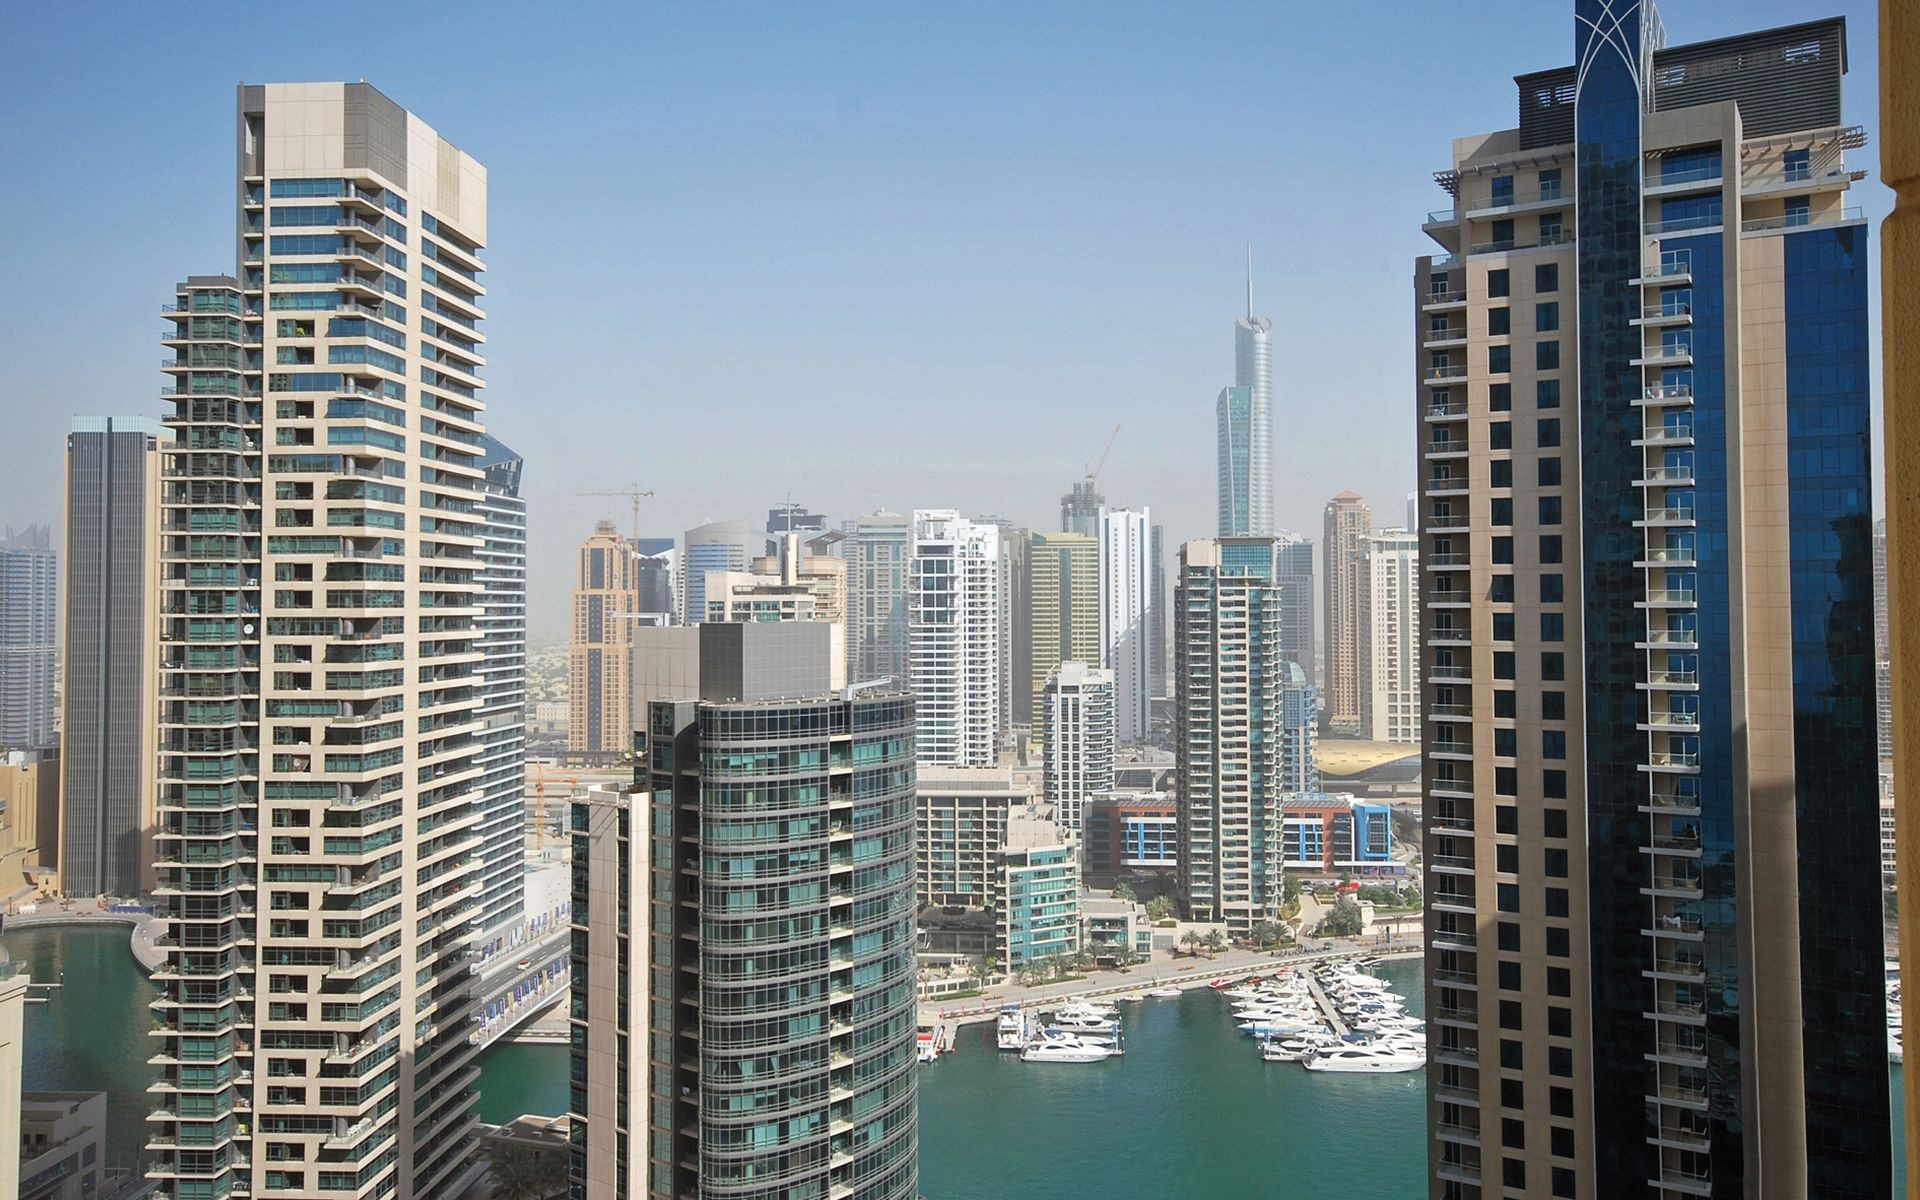 Top Dubai Marina Pictures Photos Images Getty